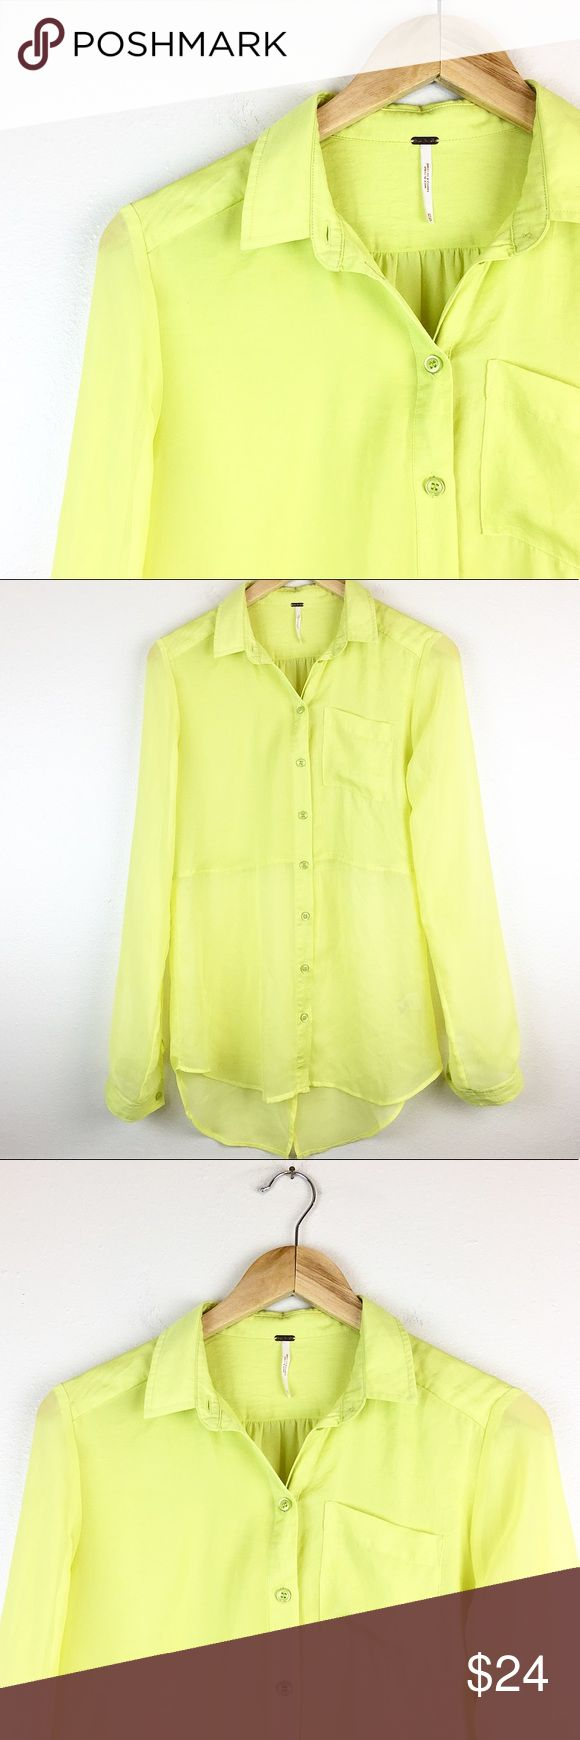 """Free People Women's Size XS Button Down Blouse Free People women's button down blouse, vibrant green/yellow color. Top is sheer and has longer back that opens. Small spot on back of shirt, did not come out in wash, not too noticeable.   Measurements: Bust - 19"""" armpit to armpit Sleeve Length - 25"""" Length - 32"""" taken from back of garment, top to bottom  HAPPY POSHING!  storage code: F14 Free People Tops Button Down Shirts"""